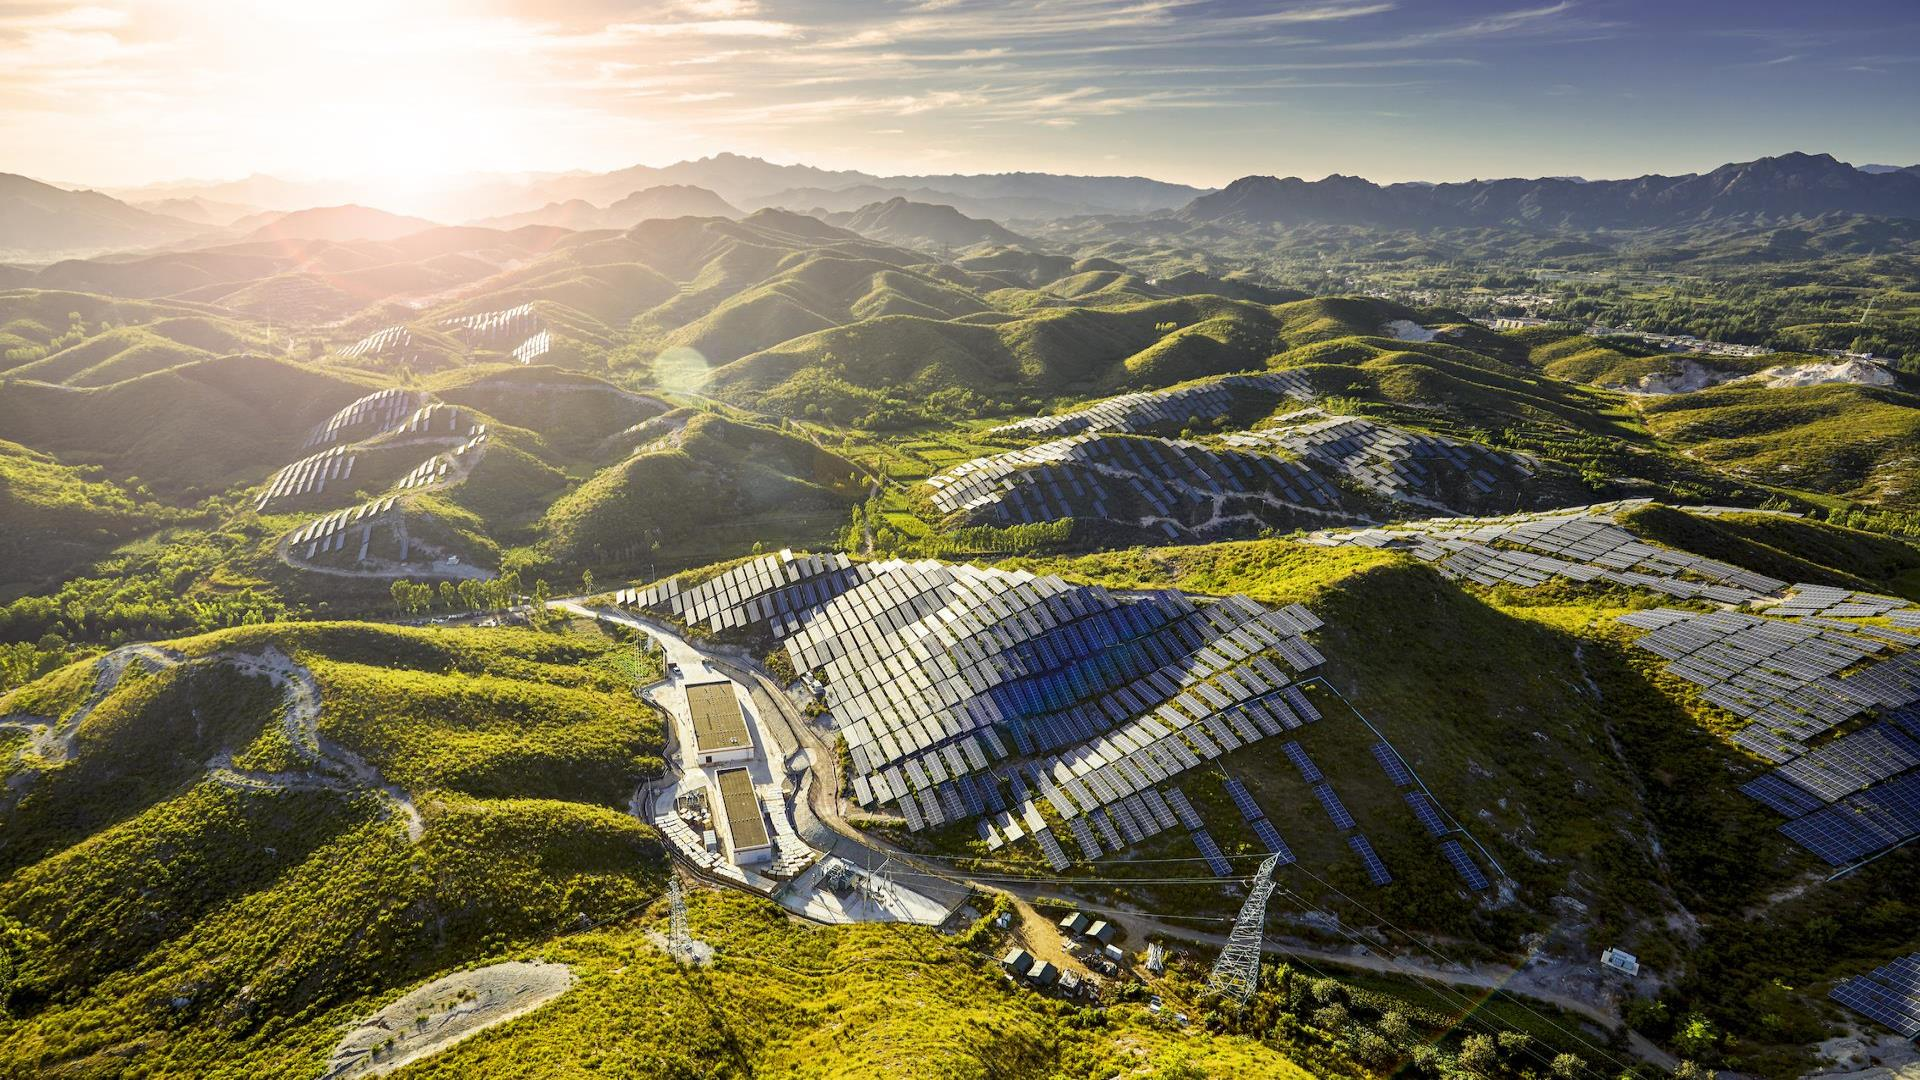 Solar panels on a mountain